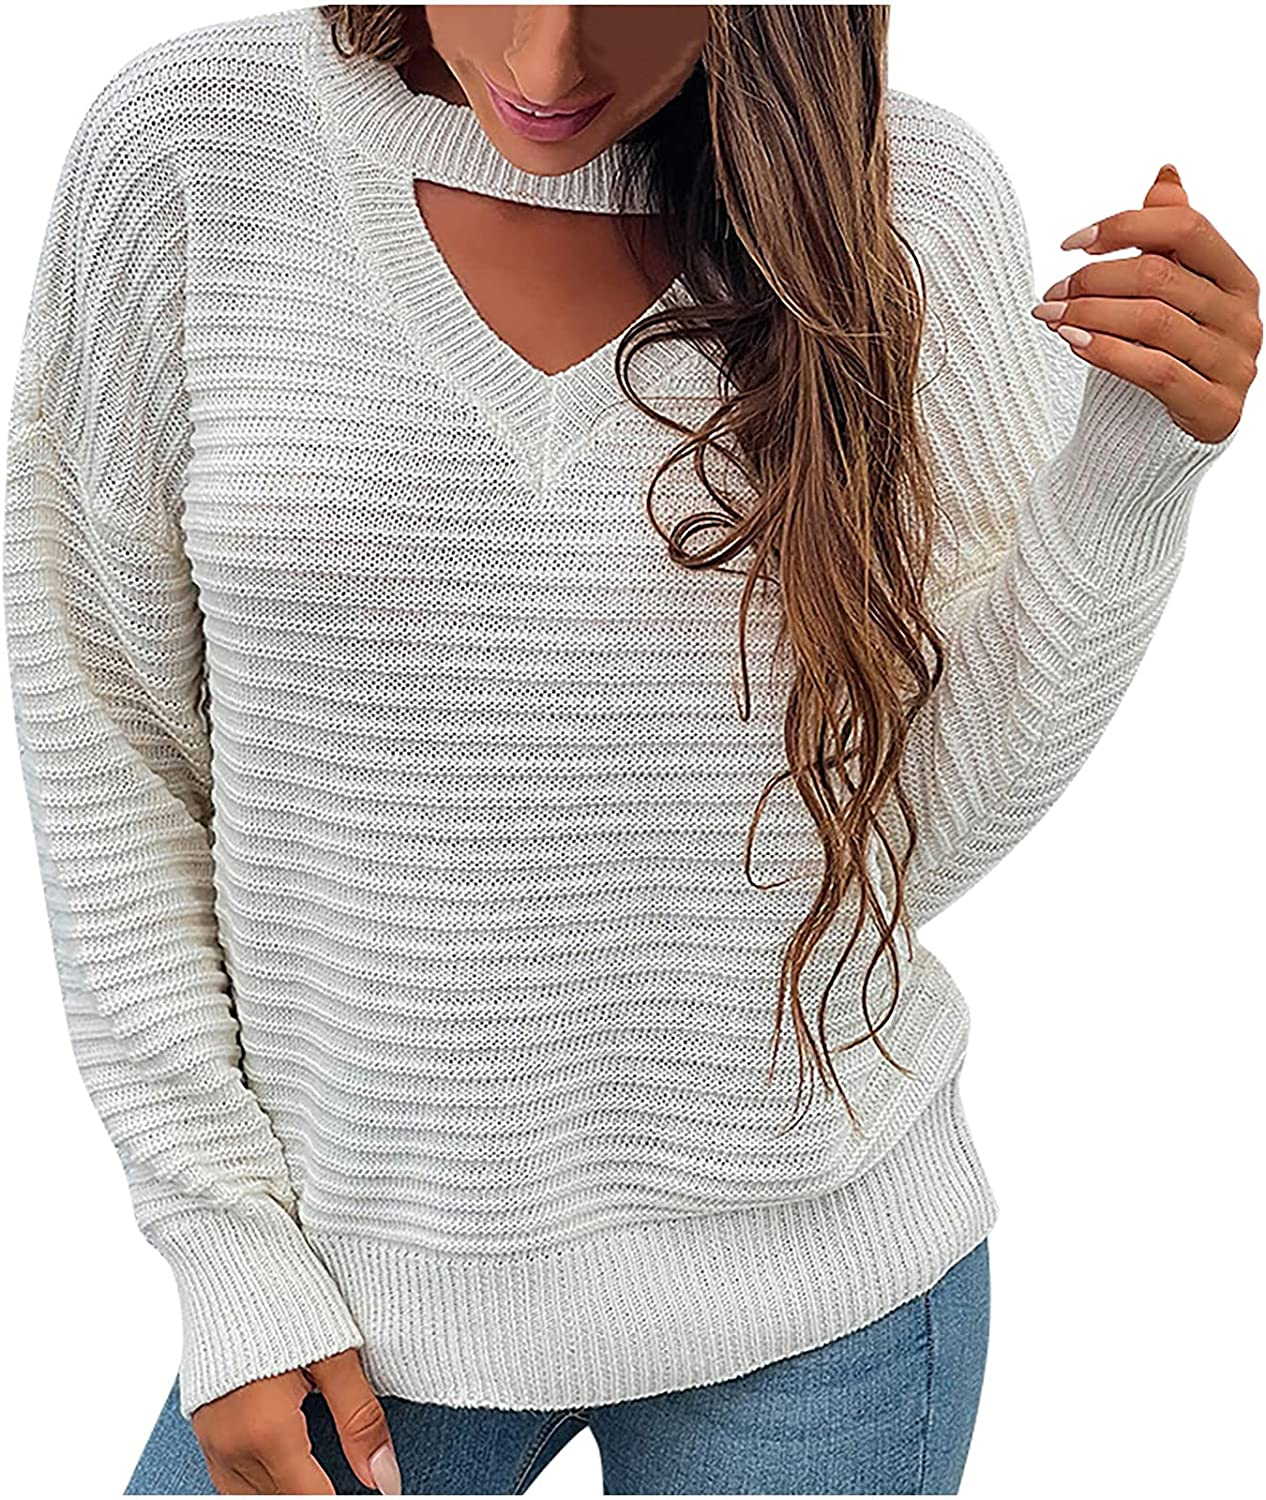 Women's Cable Knitted Choker Sweater Long Sleeve Knitted Tops Solid Color Crew Neck Loose Pullovers Jumper Blouses